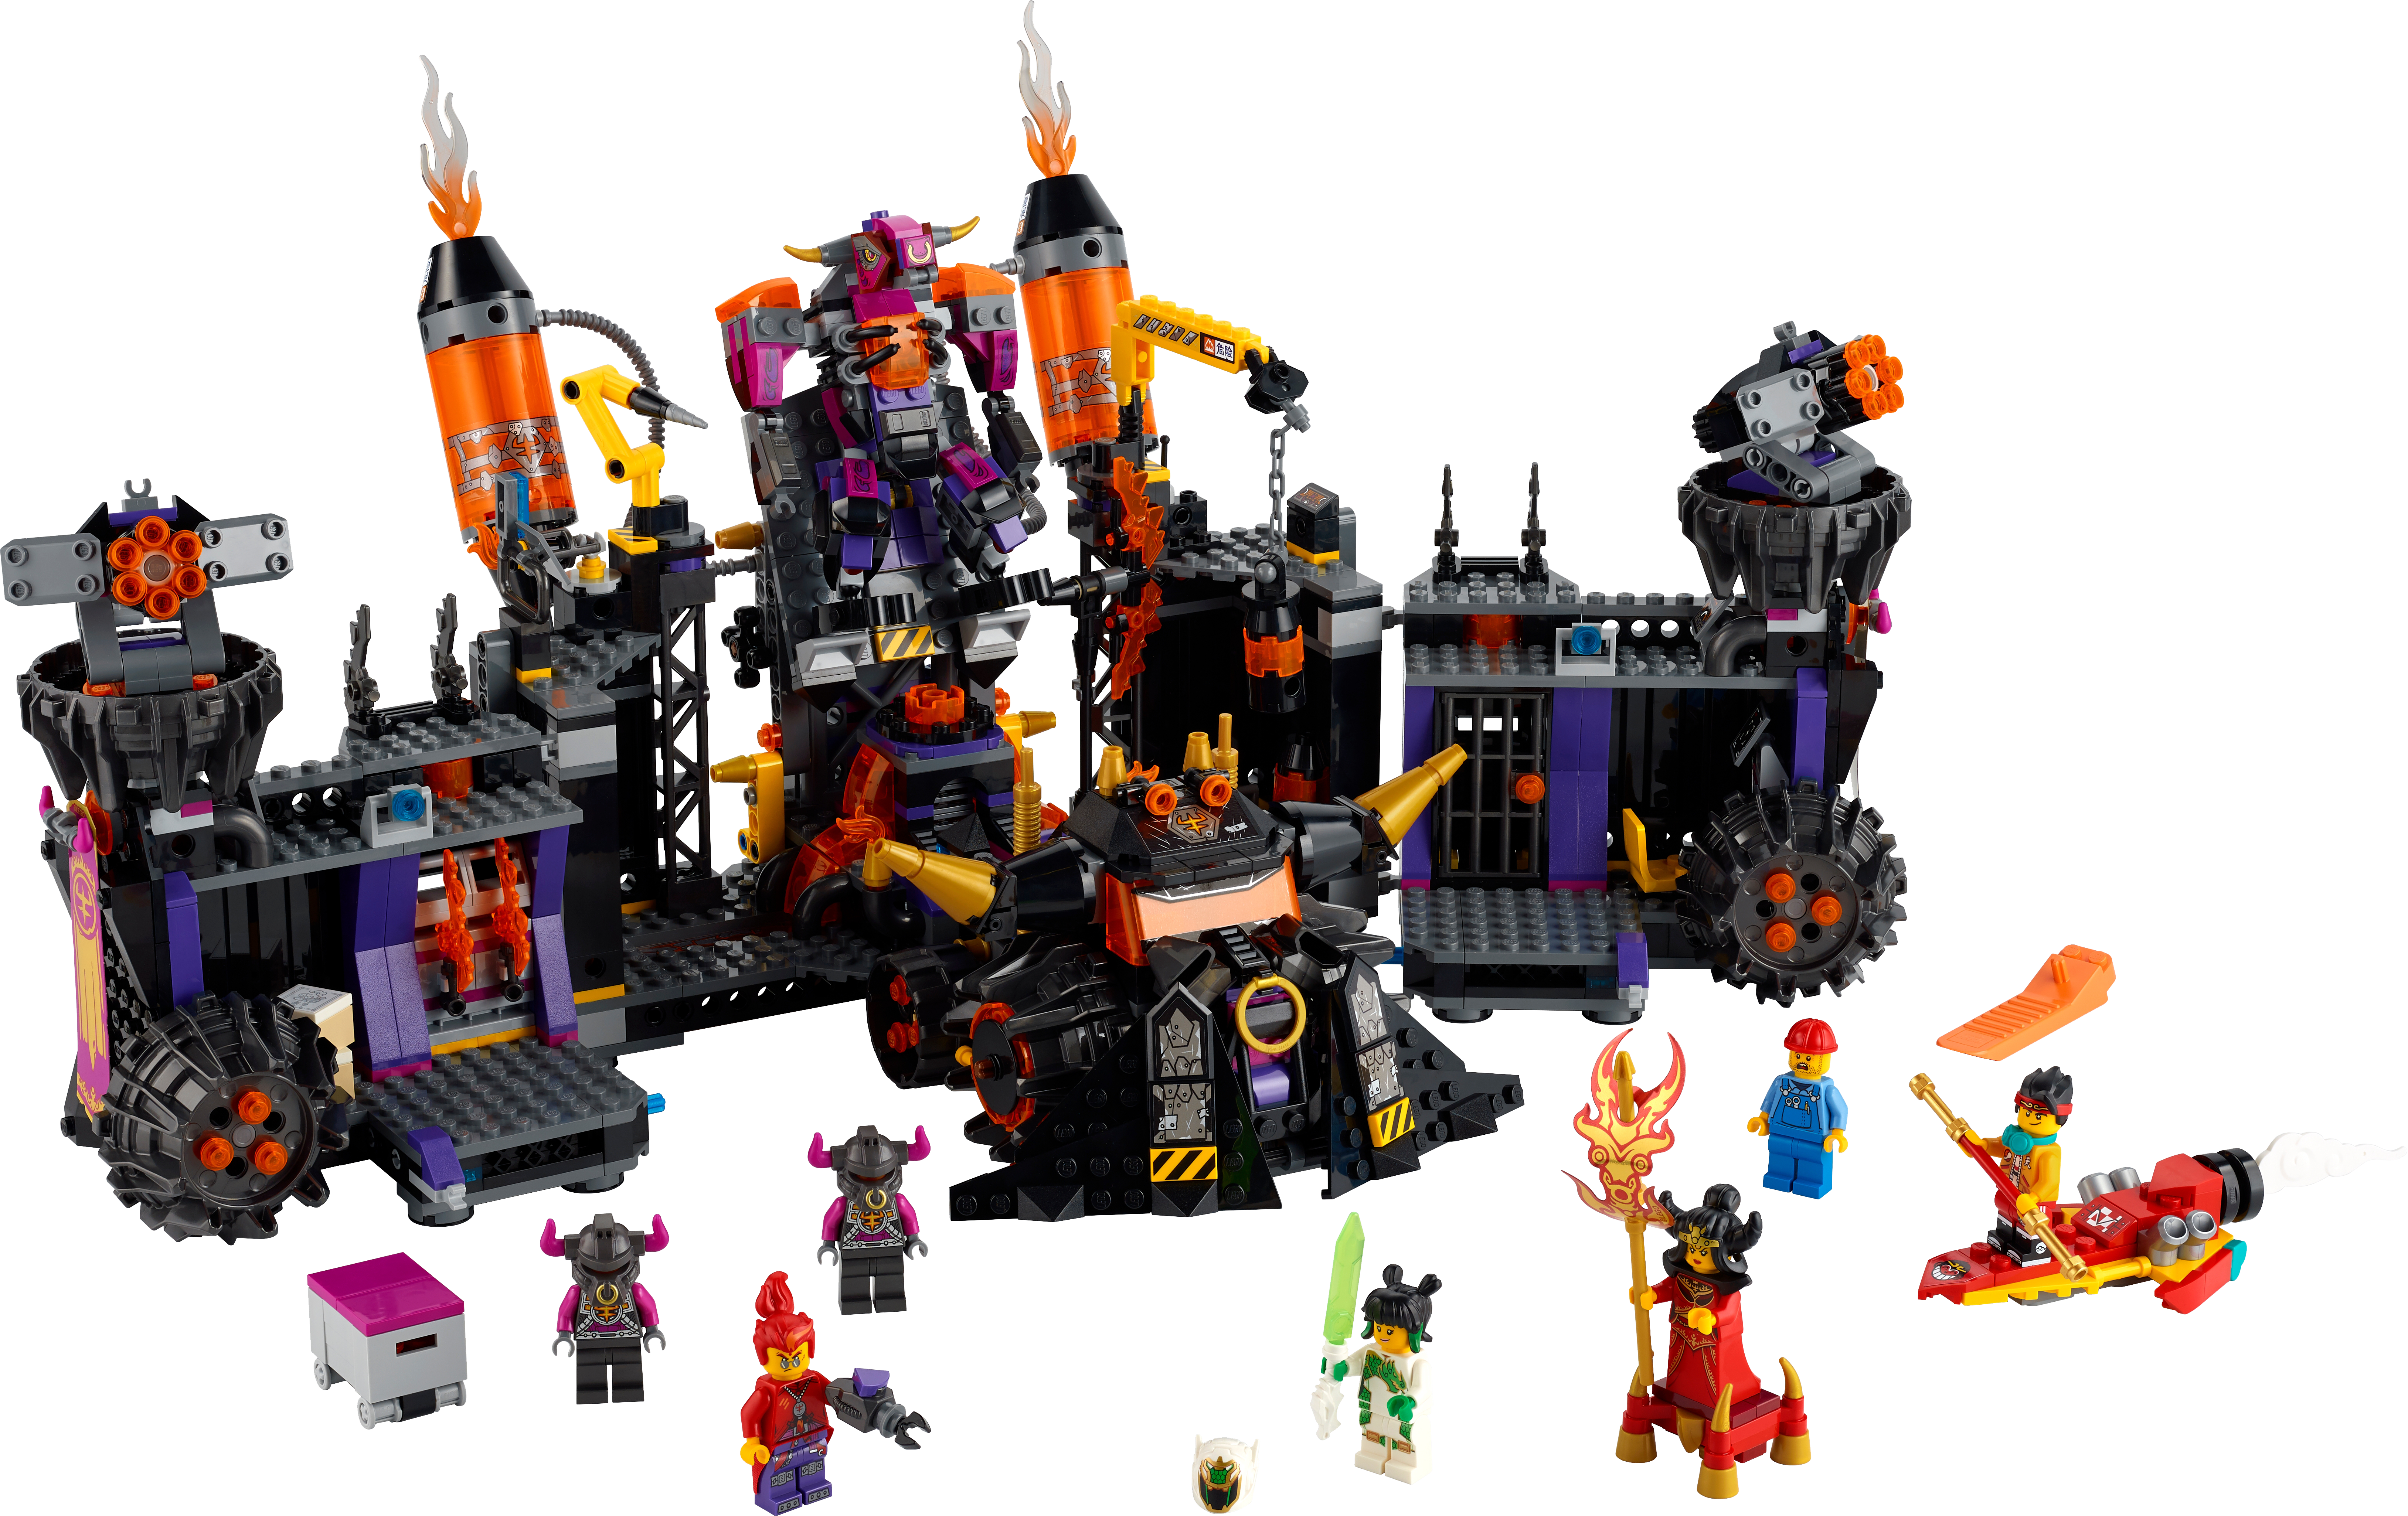 LEGO - Monkie Kid - The Flaming Foundry